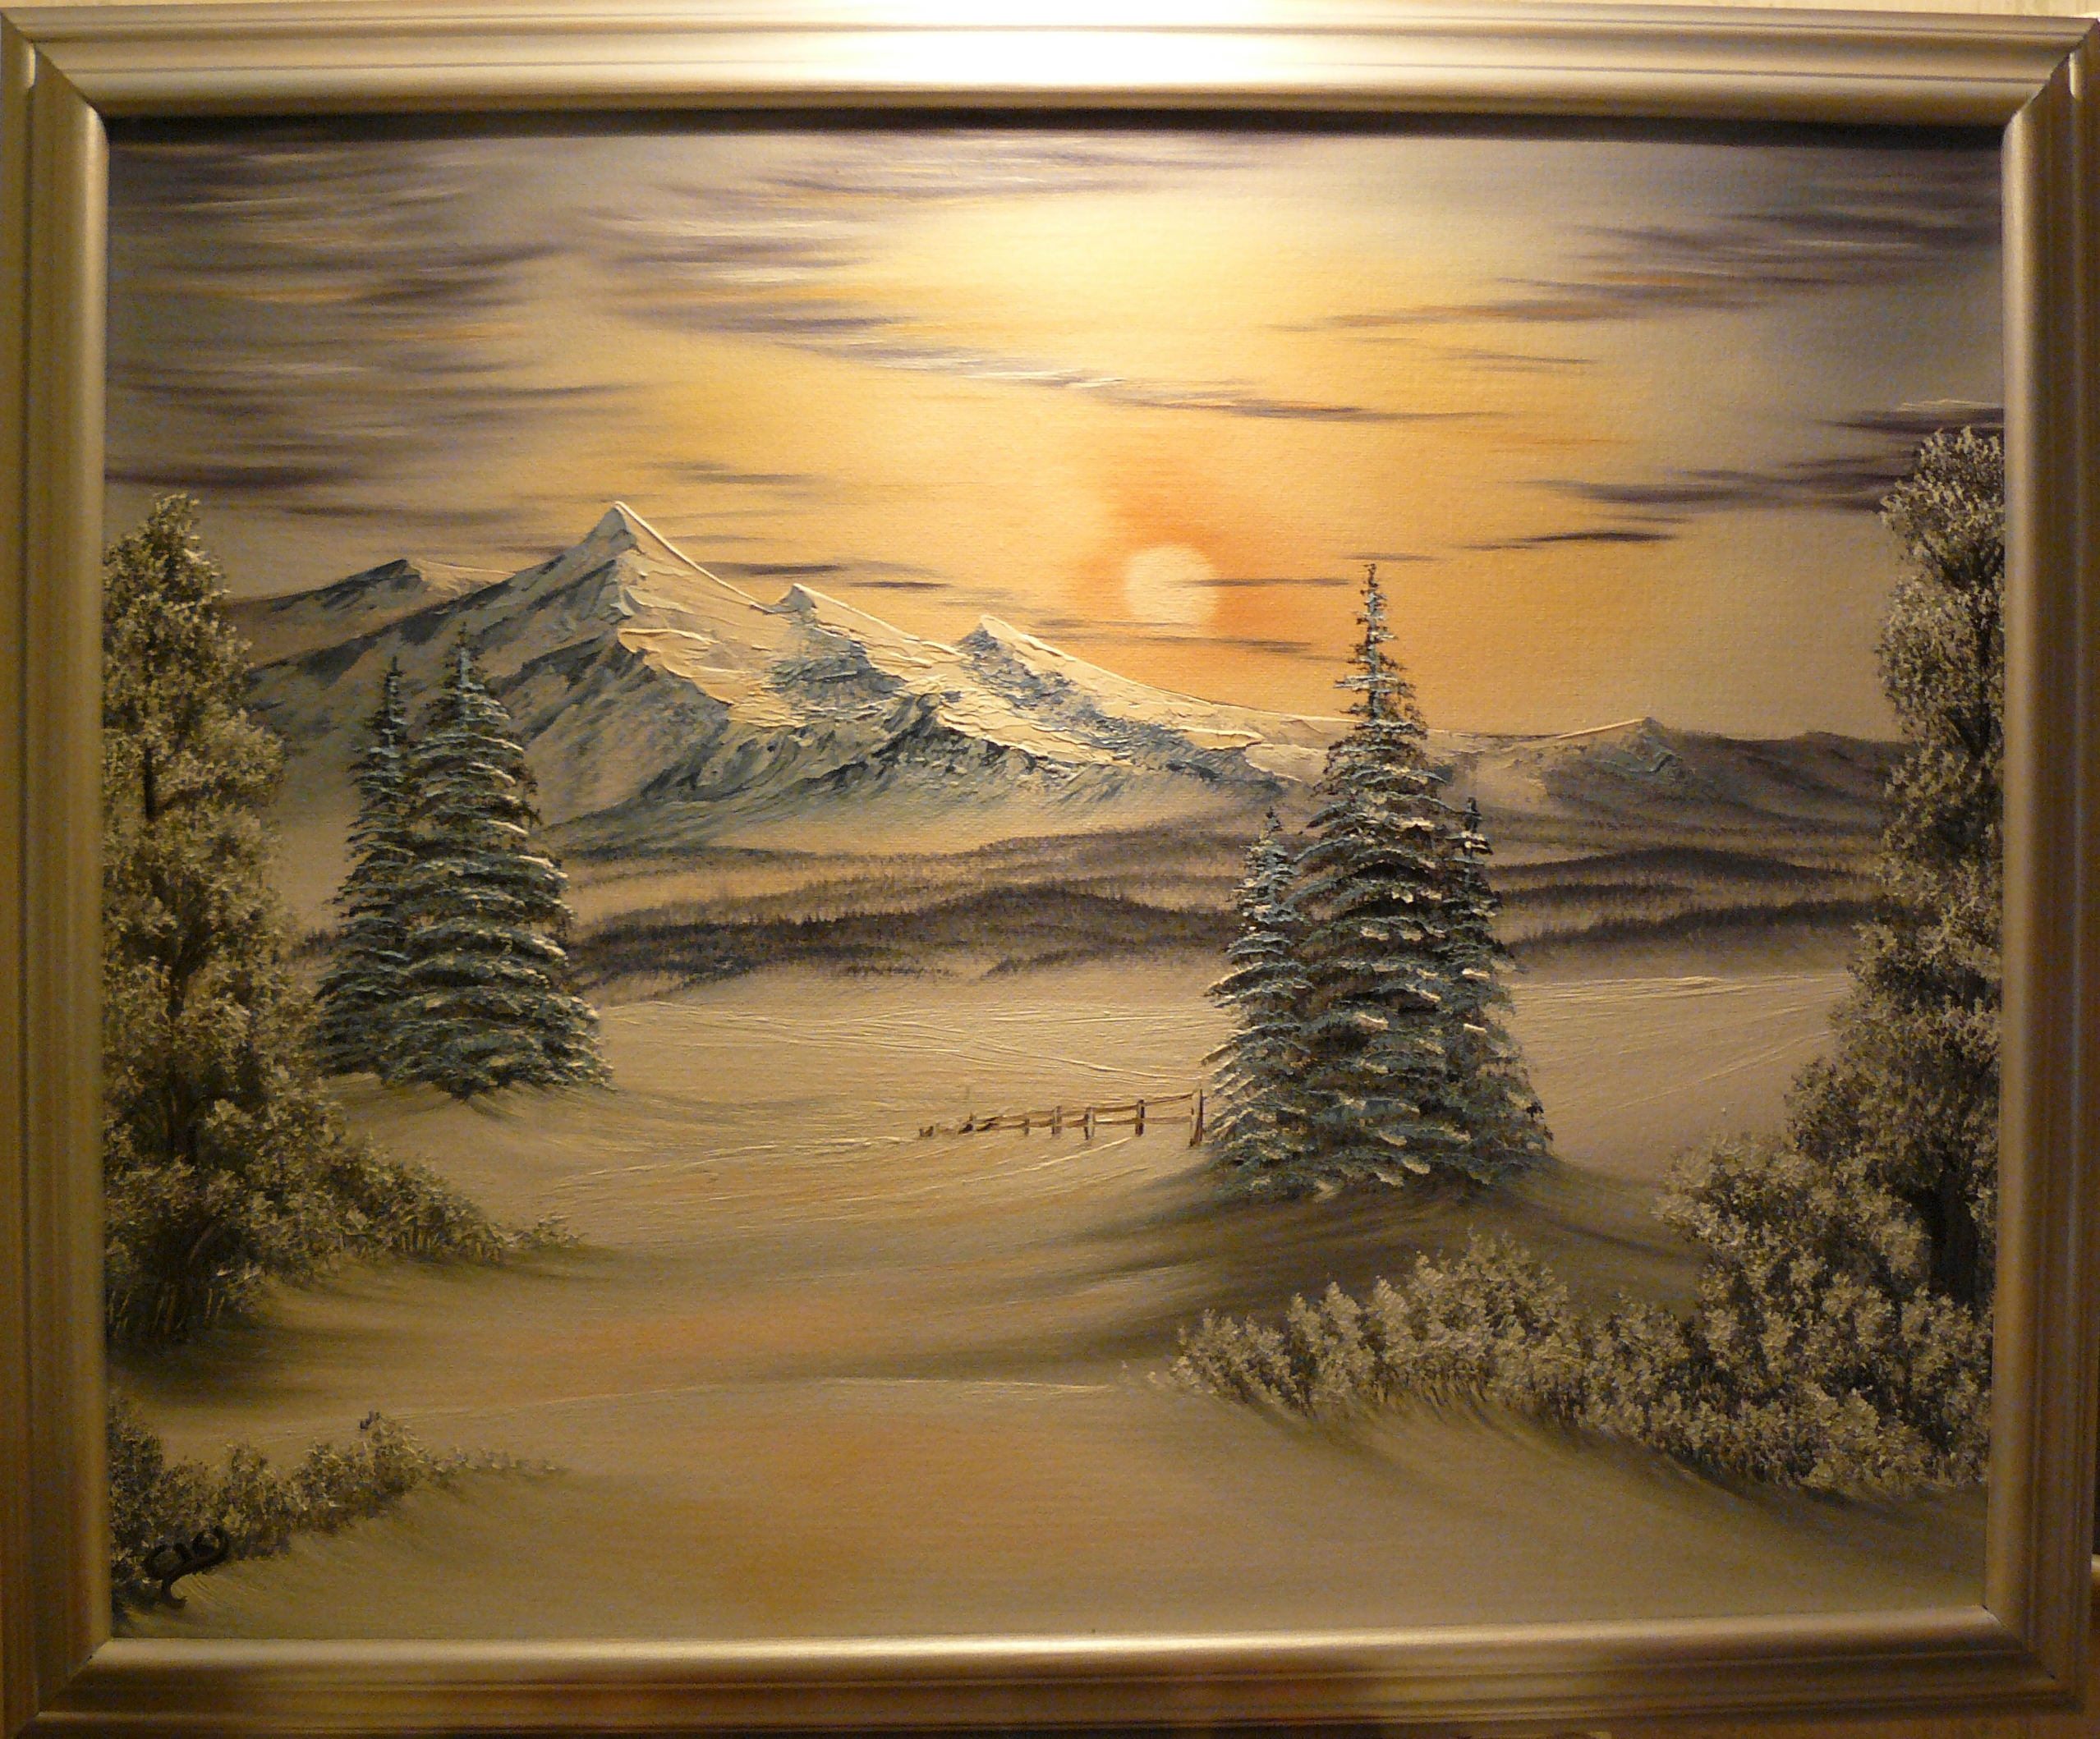 """Winter sun over the mountains"". 2012. Olja på duk, 40x50 cm."